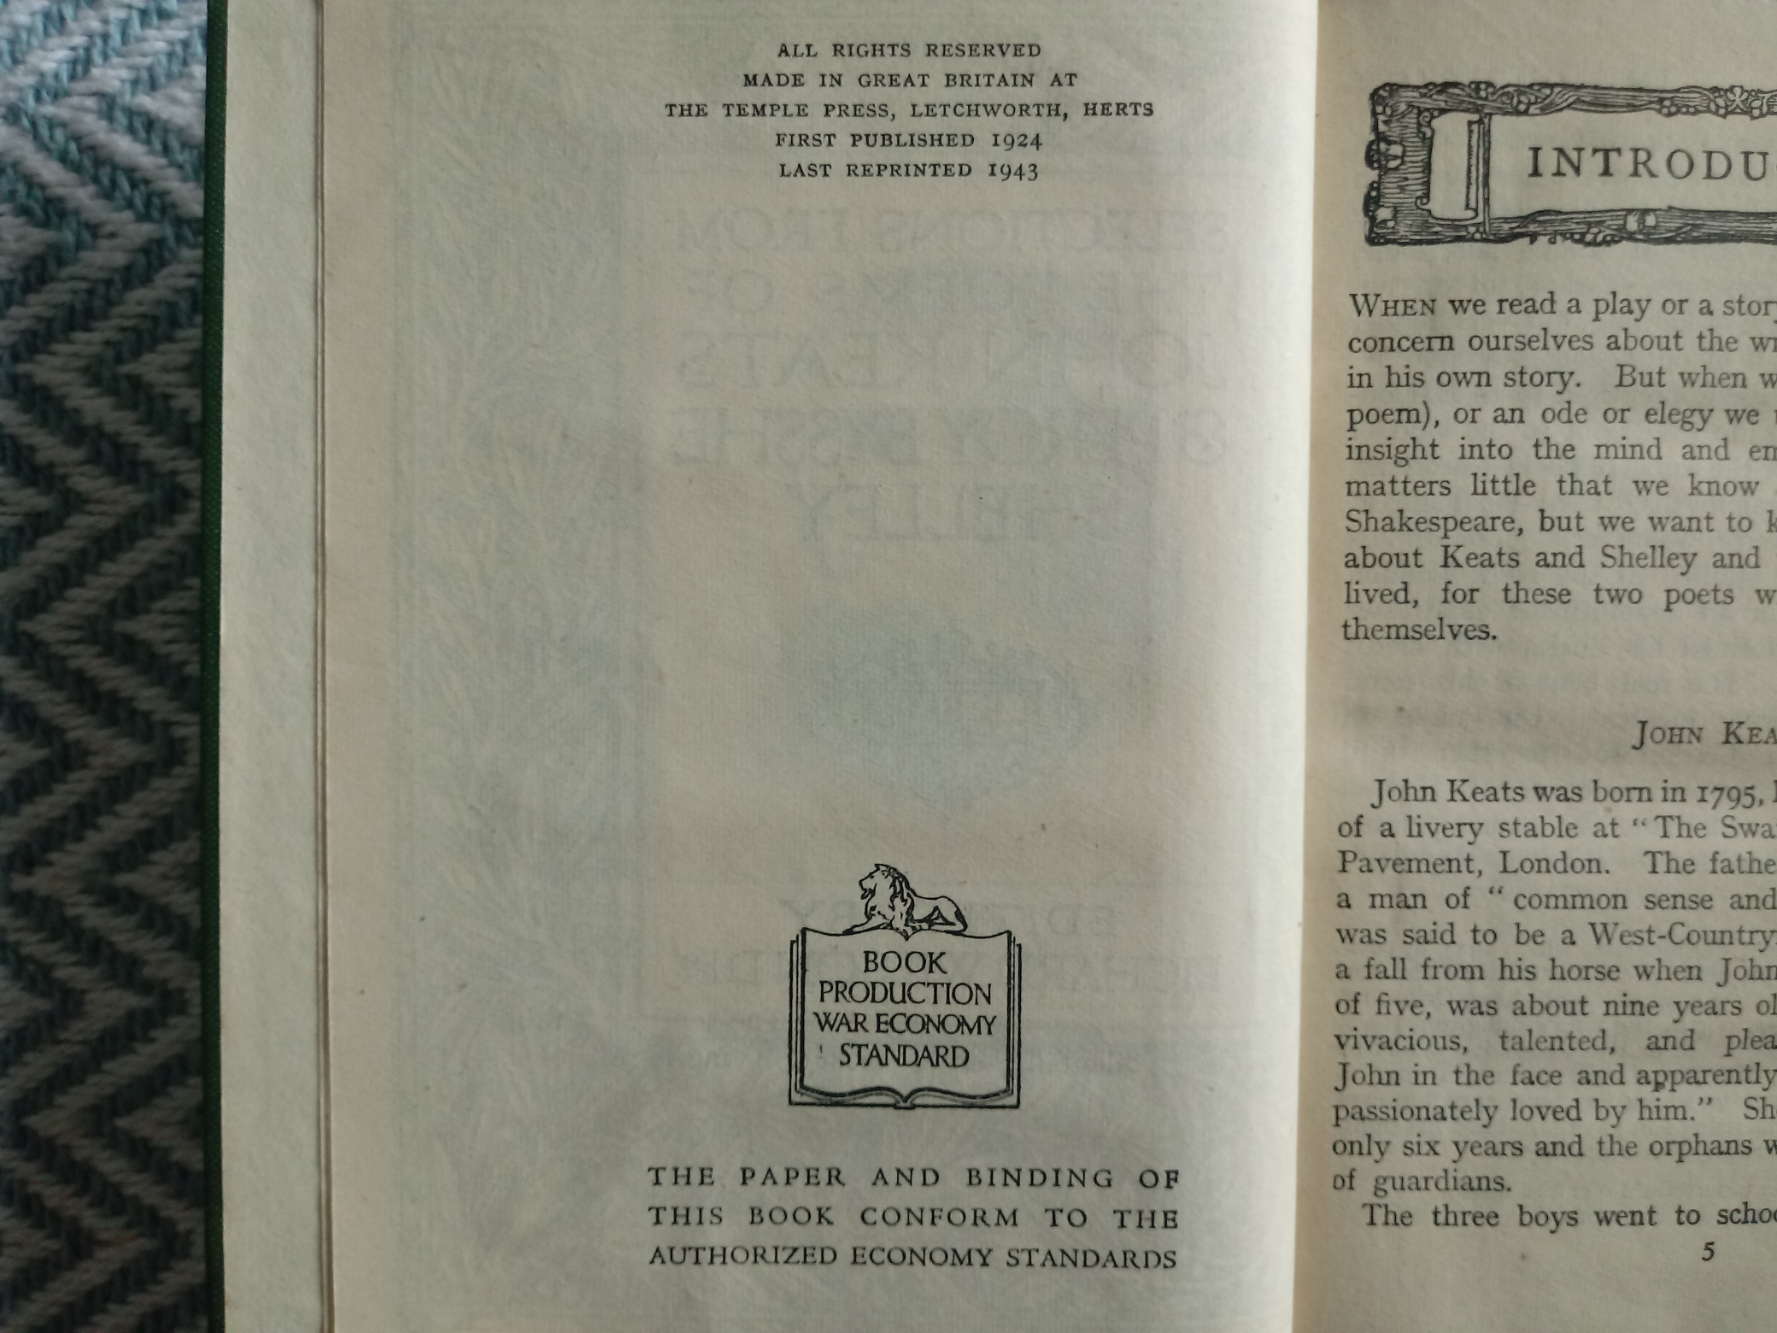 Selections From The Poems Of John Keats And Percy Bysshe Shelley Edited by Richard Wilson 256 - Image 3 of 3